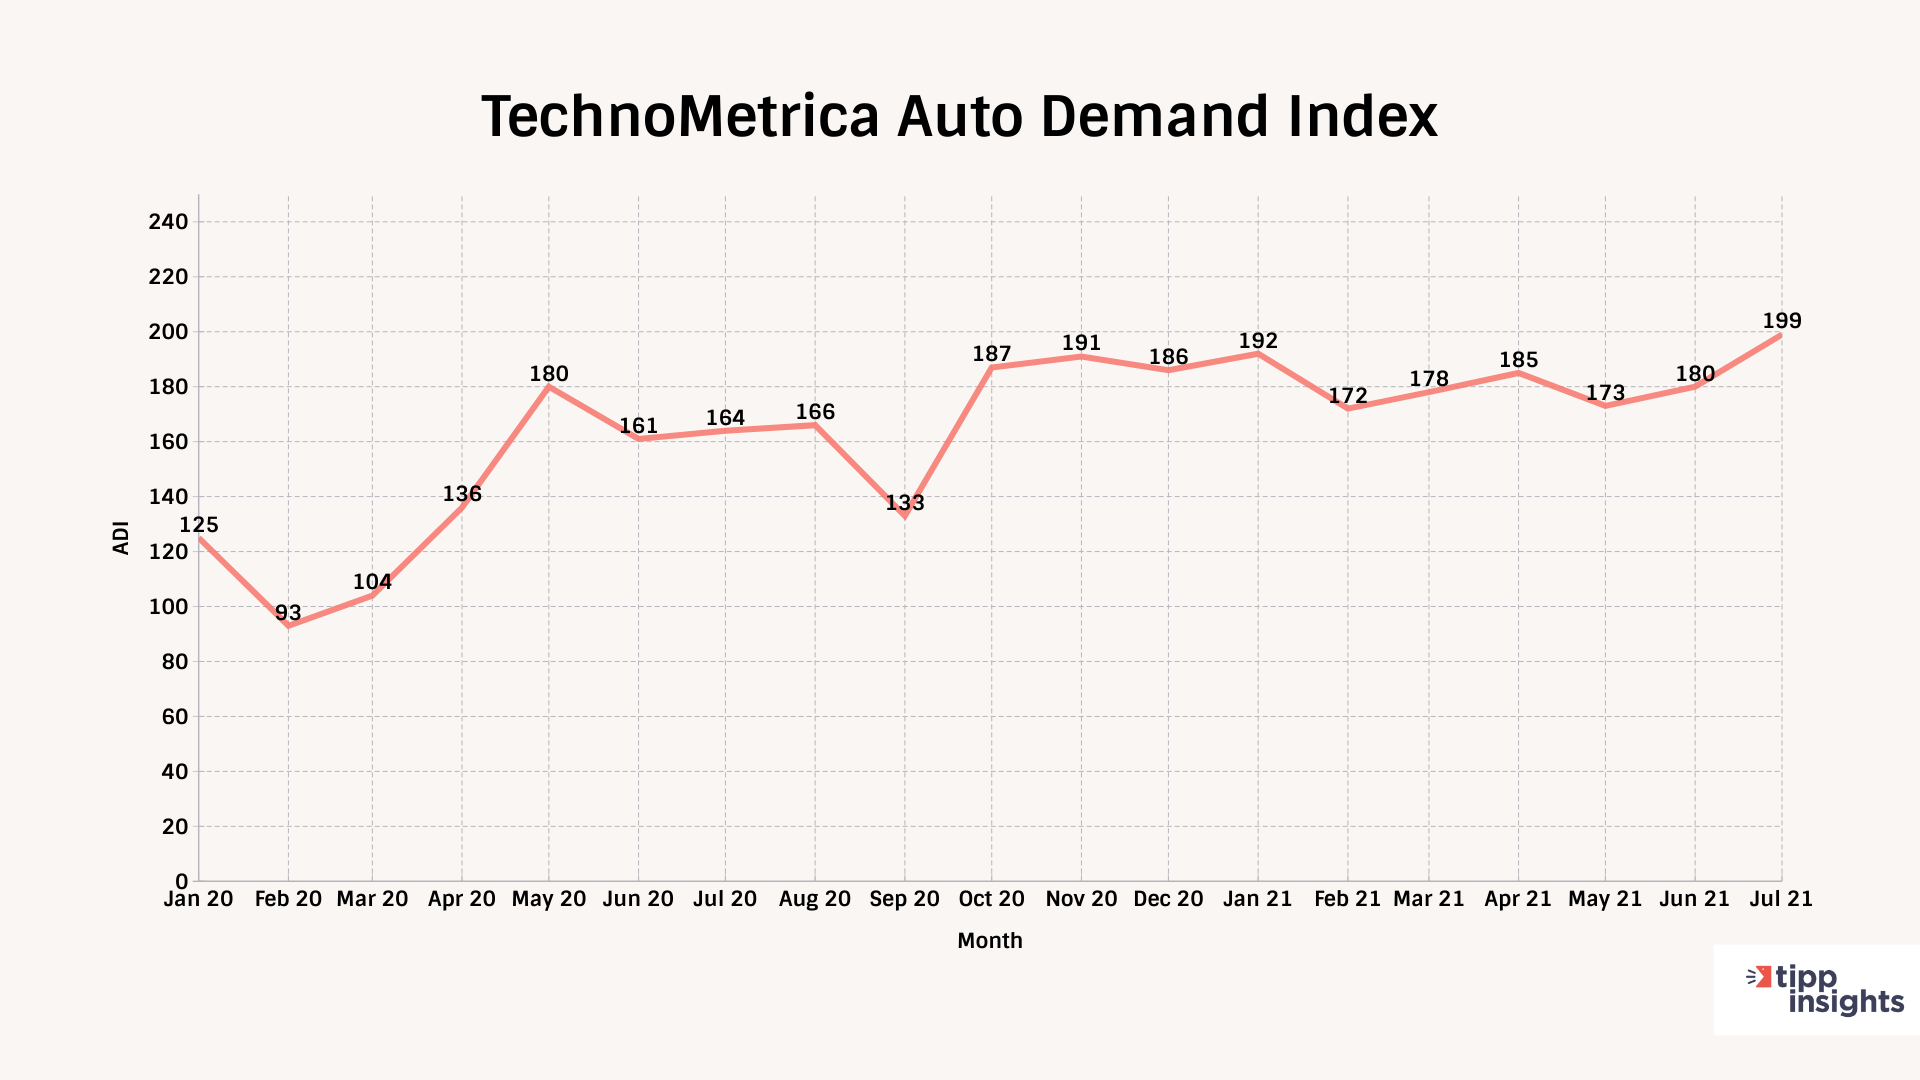 TechnoMetrica Auto Demand Index tracking since januar 2020 to july 2021 (current)